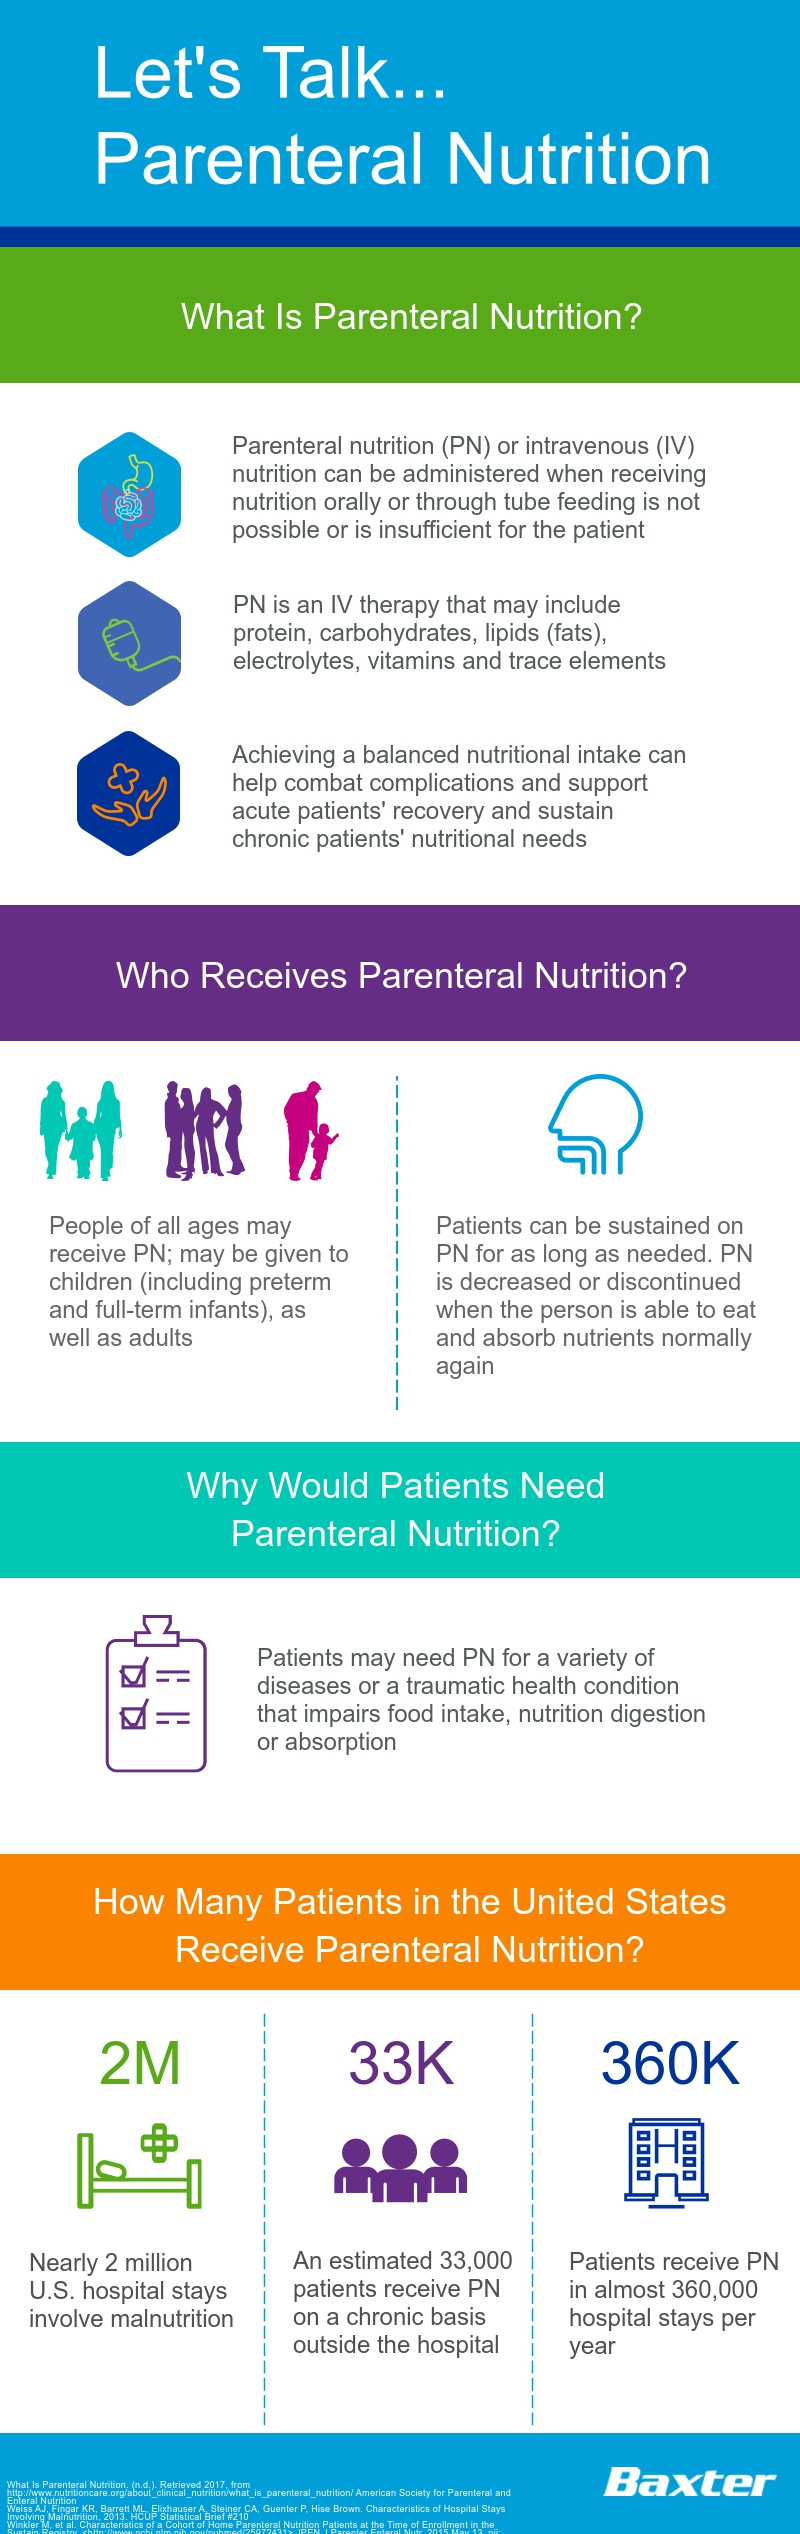 Parenteral Nutrition infographic